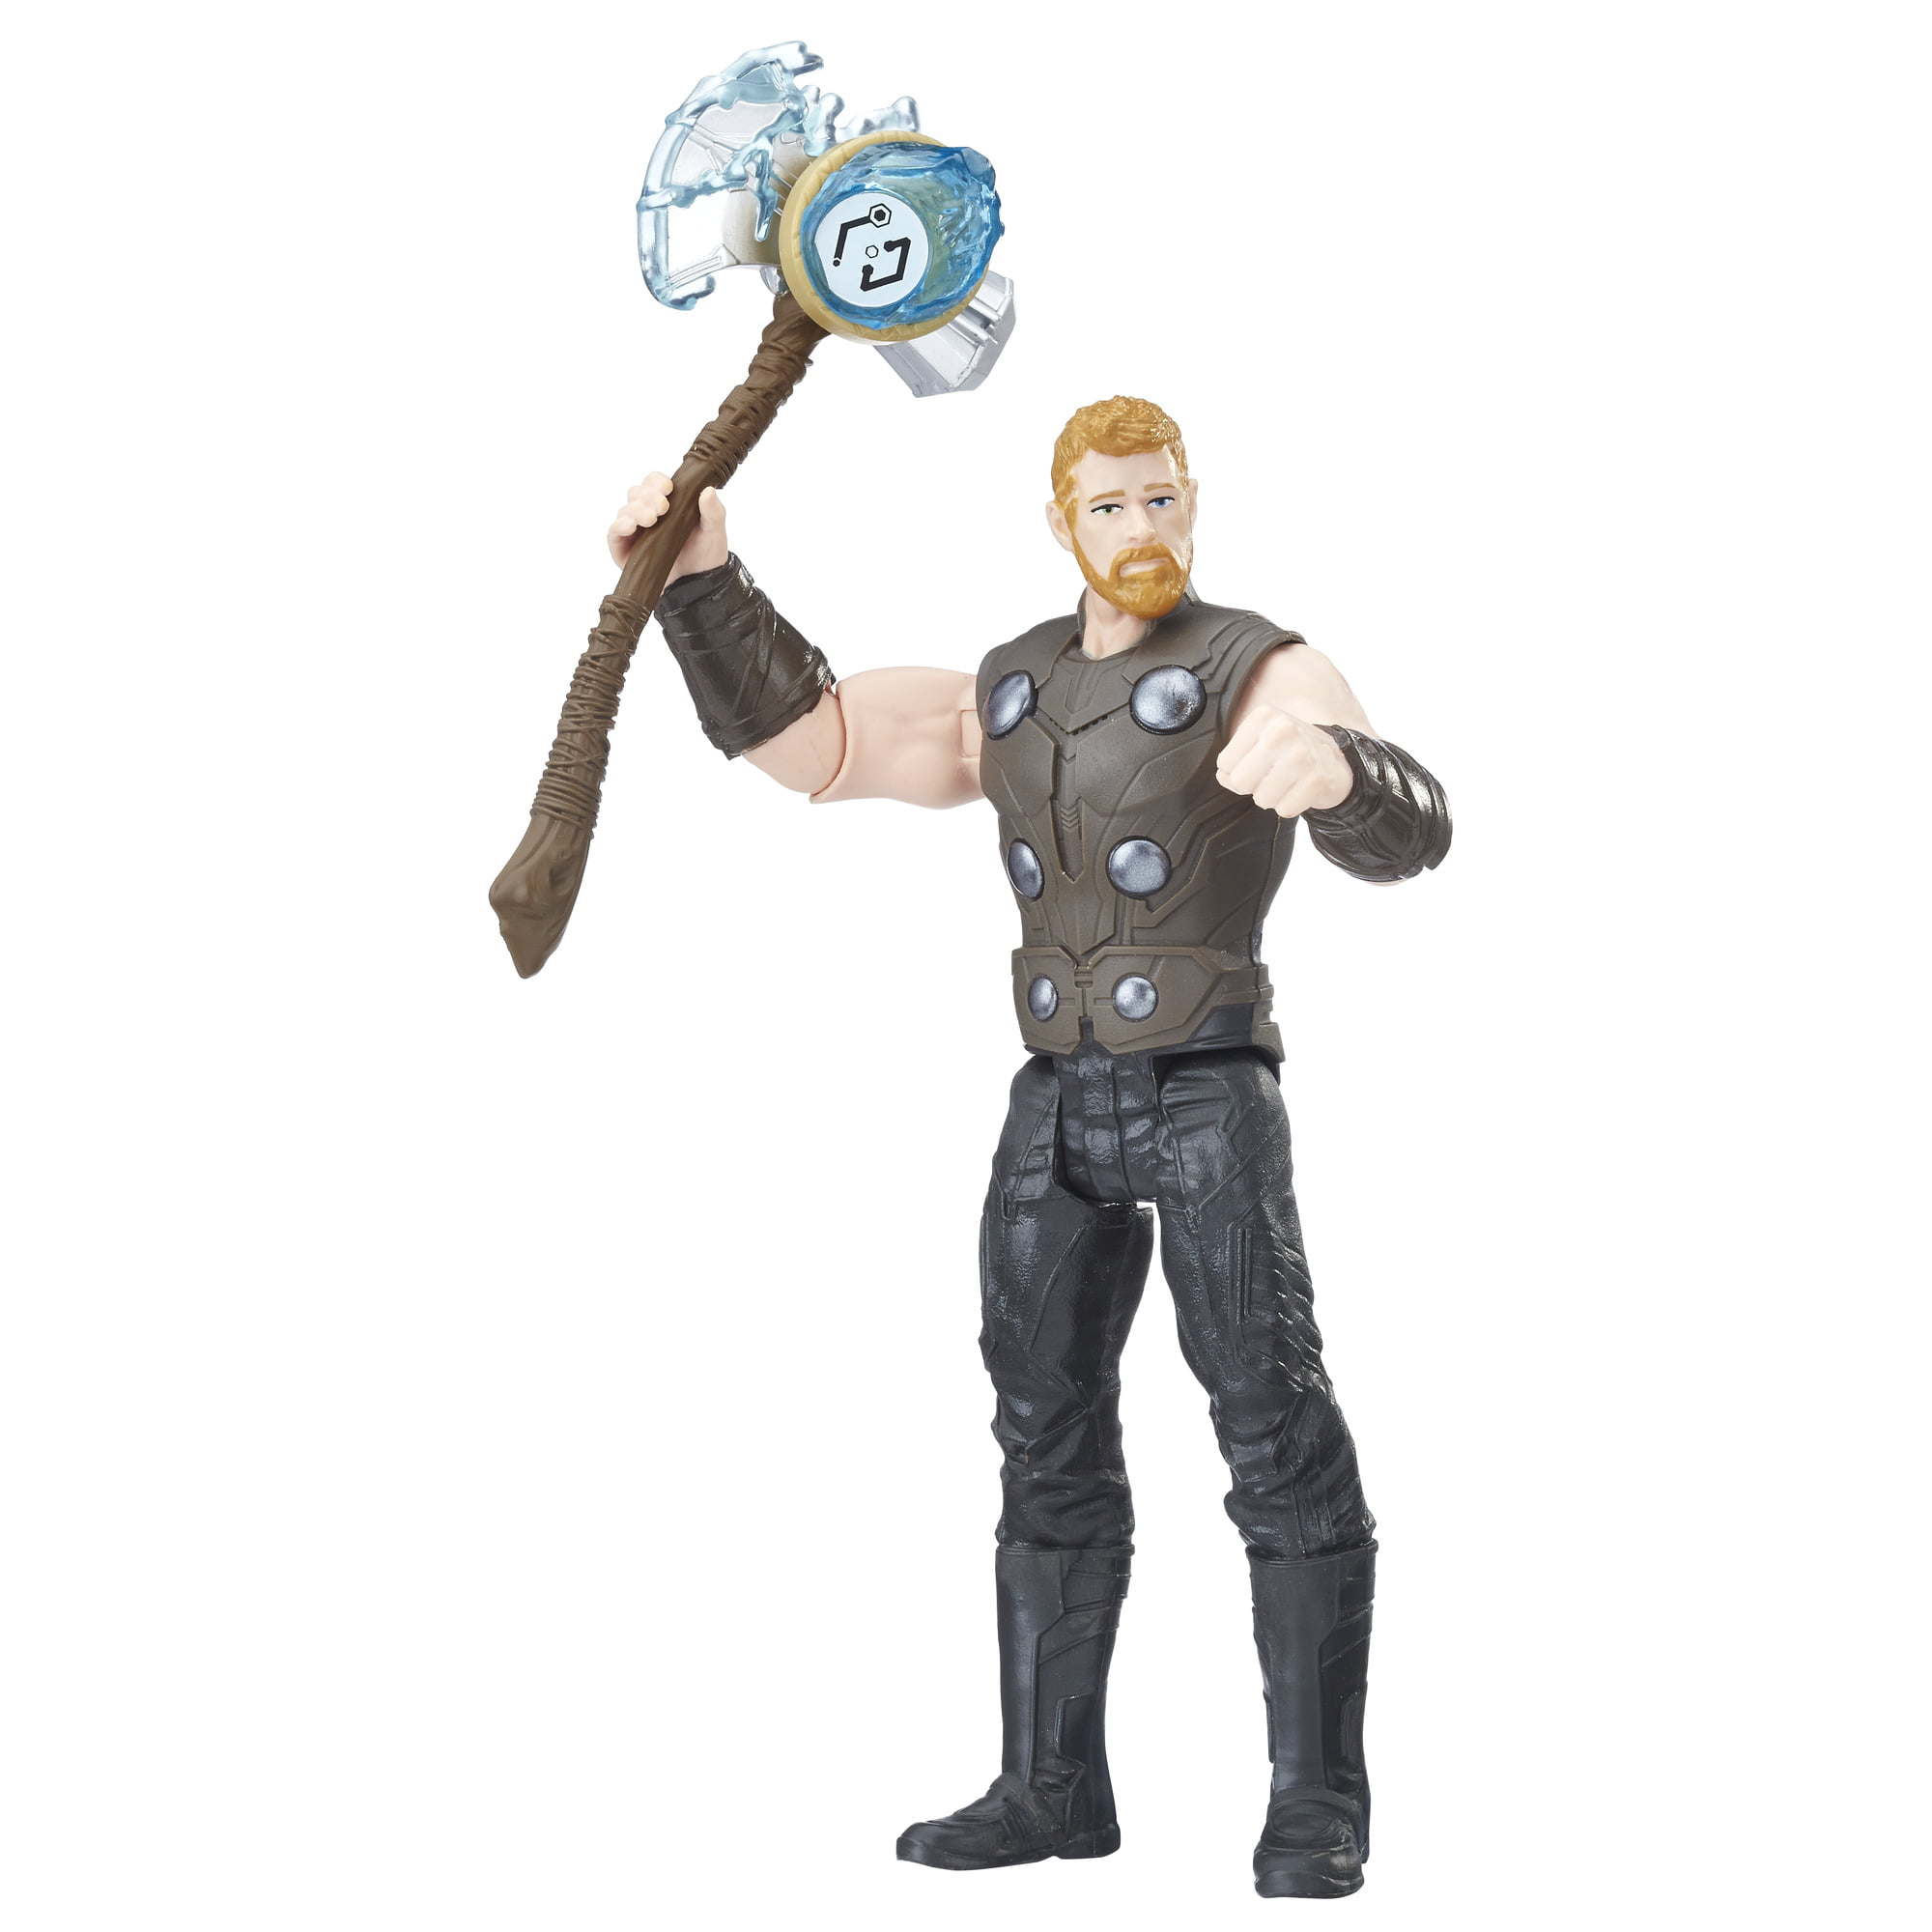 Marvel Avengers: Infinity War Thor with Infinity Stone by Hasbro